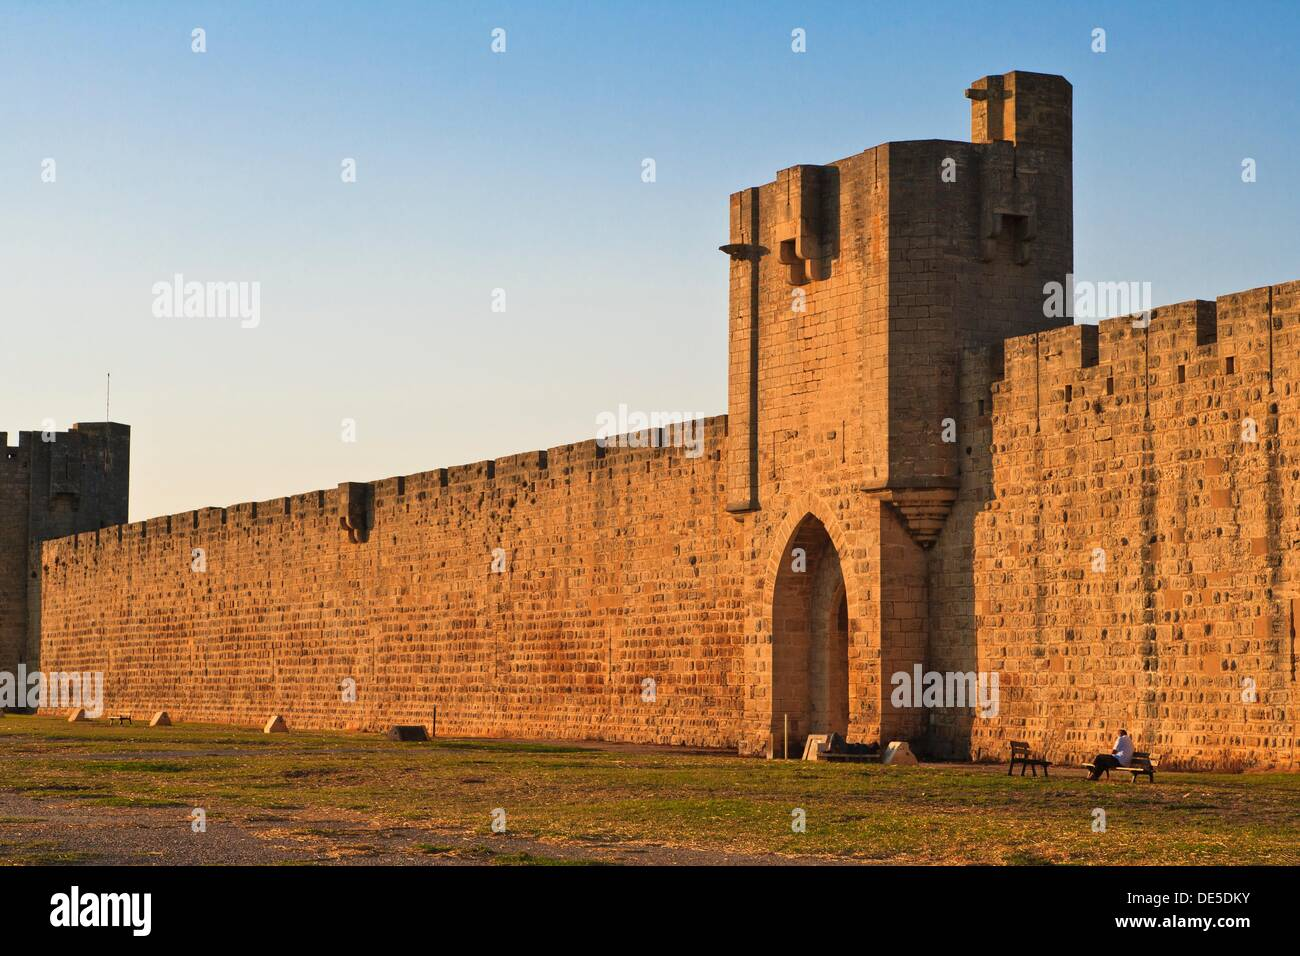 The city walls of Aigues Mortes in France, Europe - Stock Image